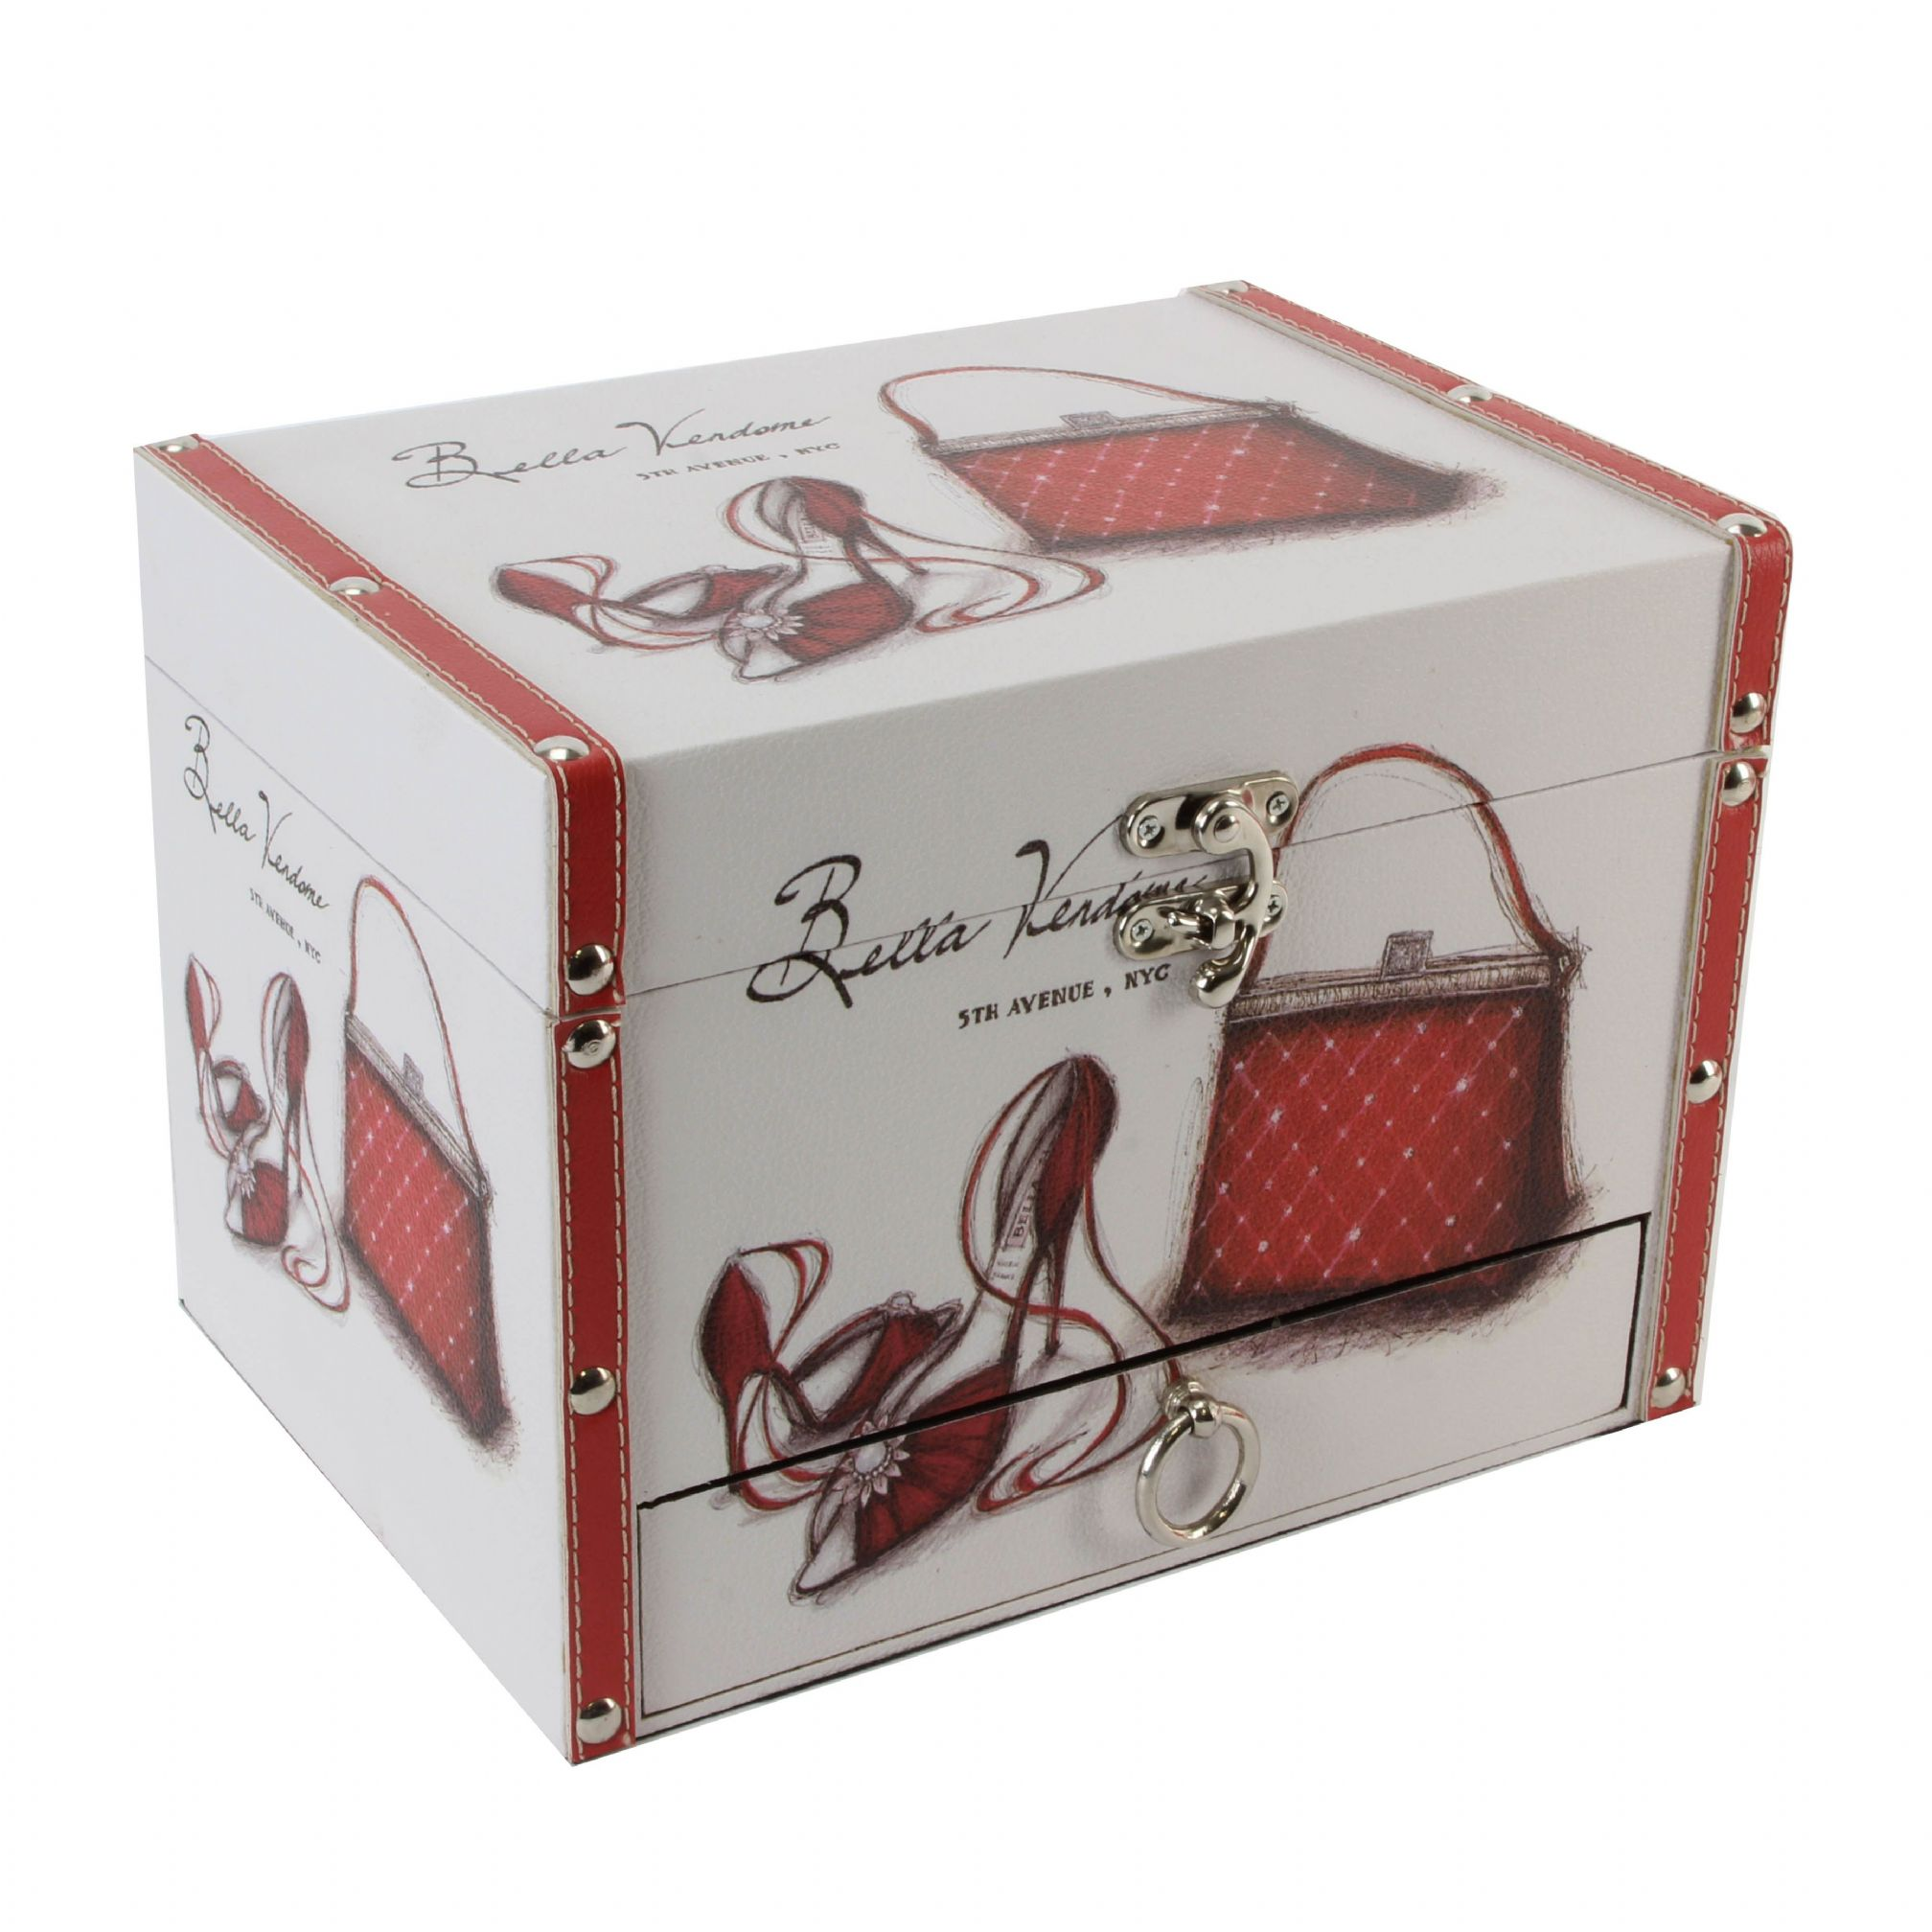 Decorative Boxes Uk: DECORATIVE STORAGE BOX